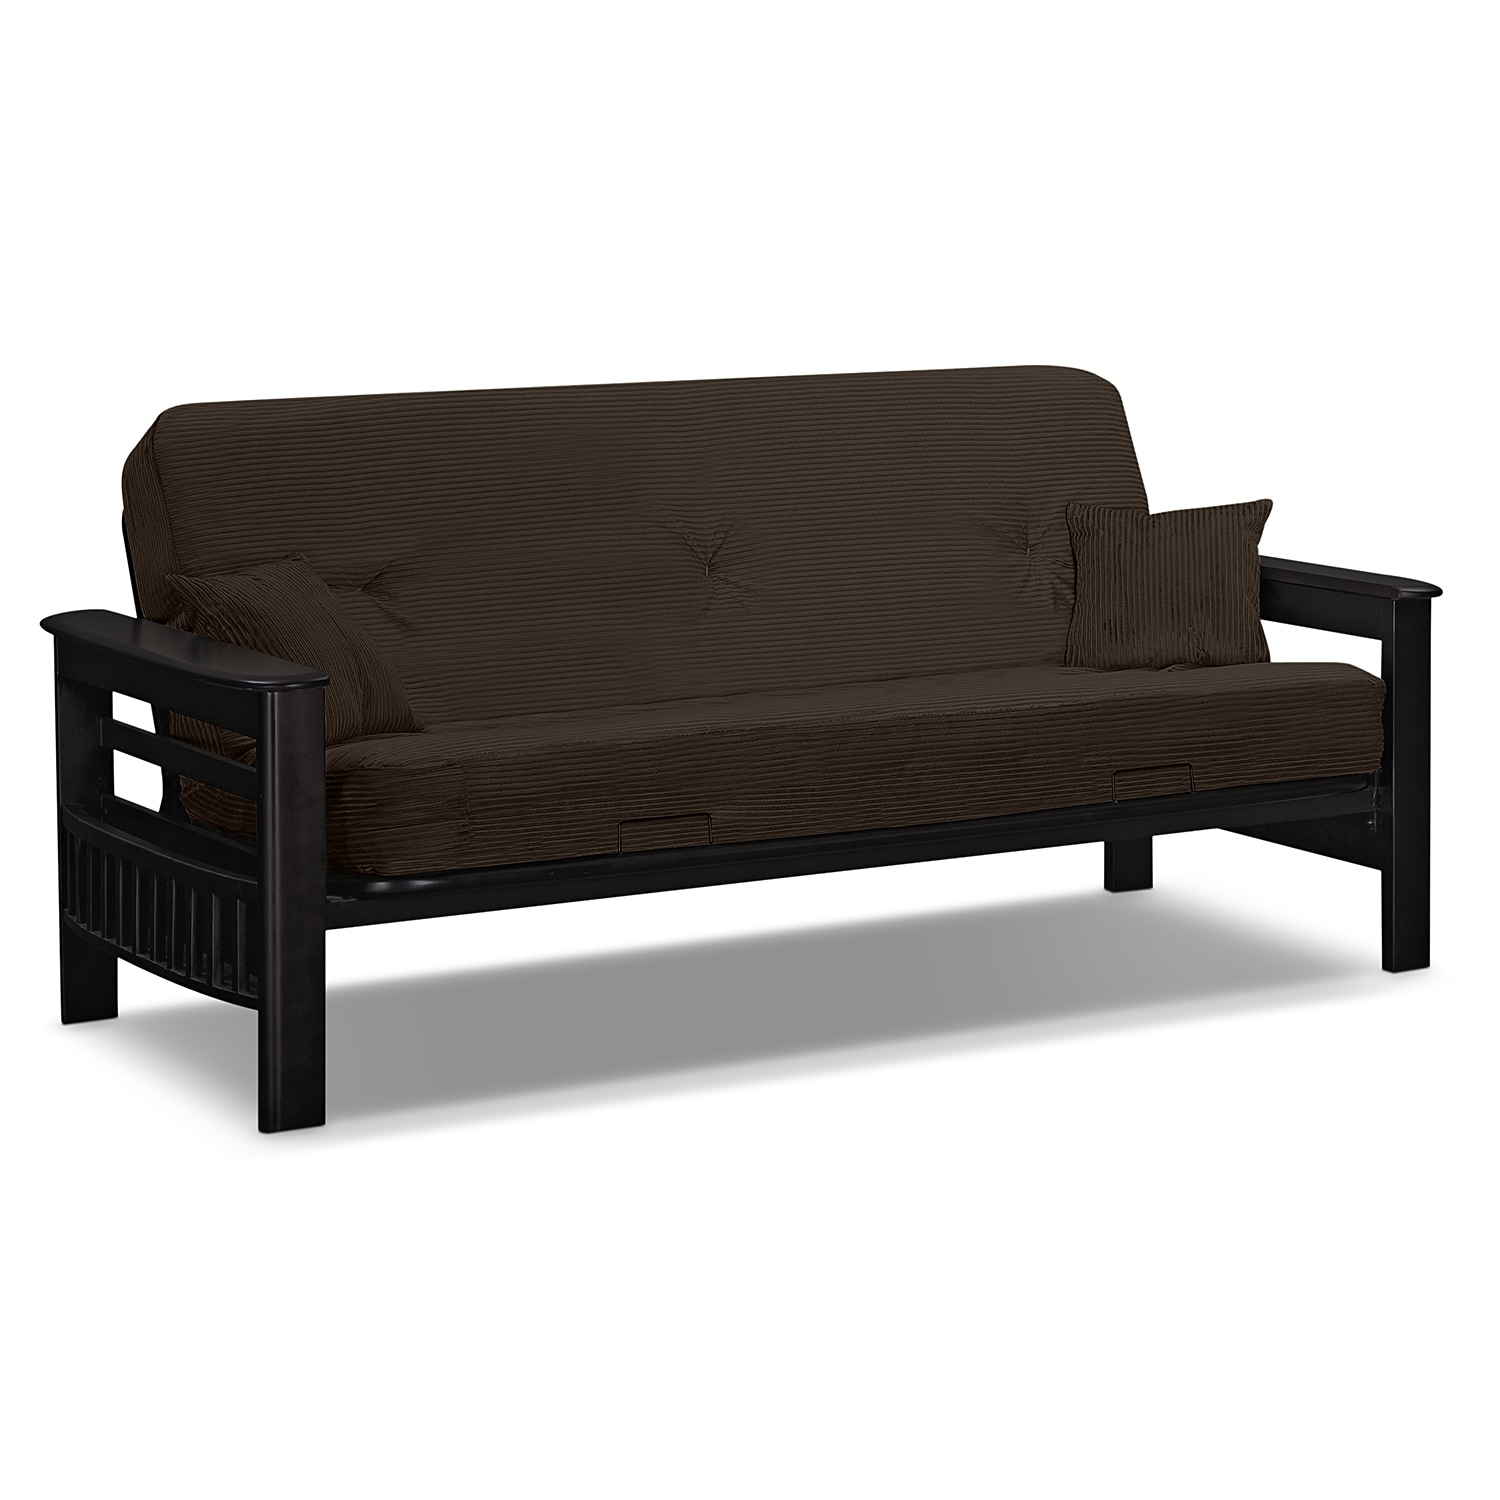 Tampa futon sofa bed brown value city furniture Loveseat sofa bed